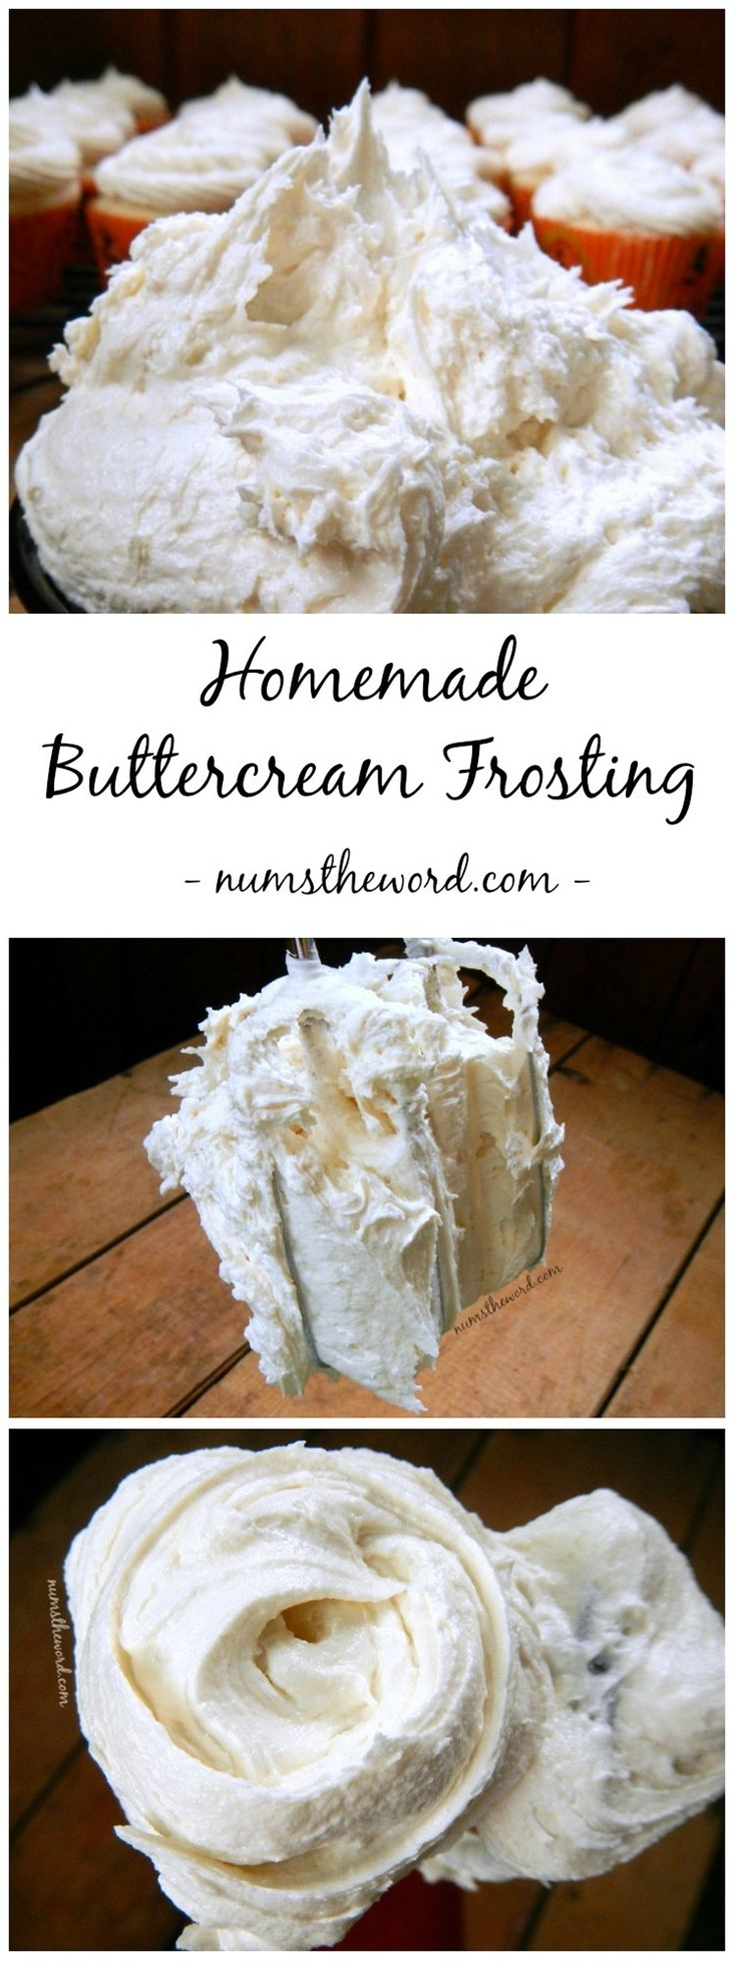 Looking for the perfect cake or cupcake frosting? Try this 5 minute homemade buttercream frosting. It's perfect with any flavor cake and the best I've had!\n\n Ingredients\n  1 cup of butter, softened\n 3 cups powdered sugar\n 1 teaspoon vanilla extract\n 2 Tablespoons heavy whipping cream